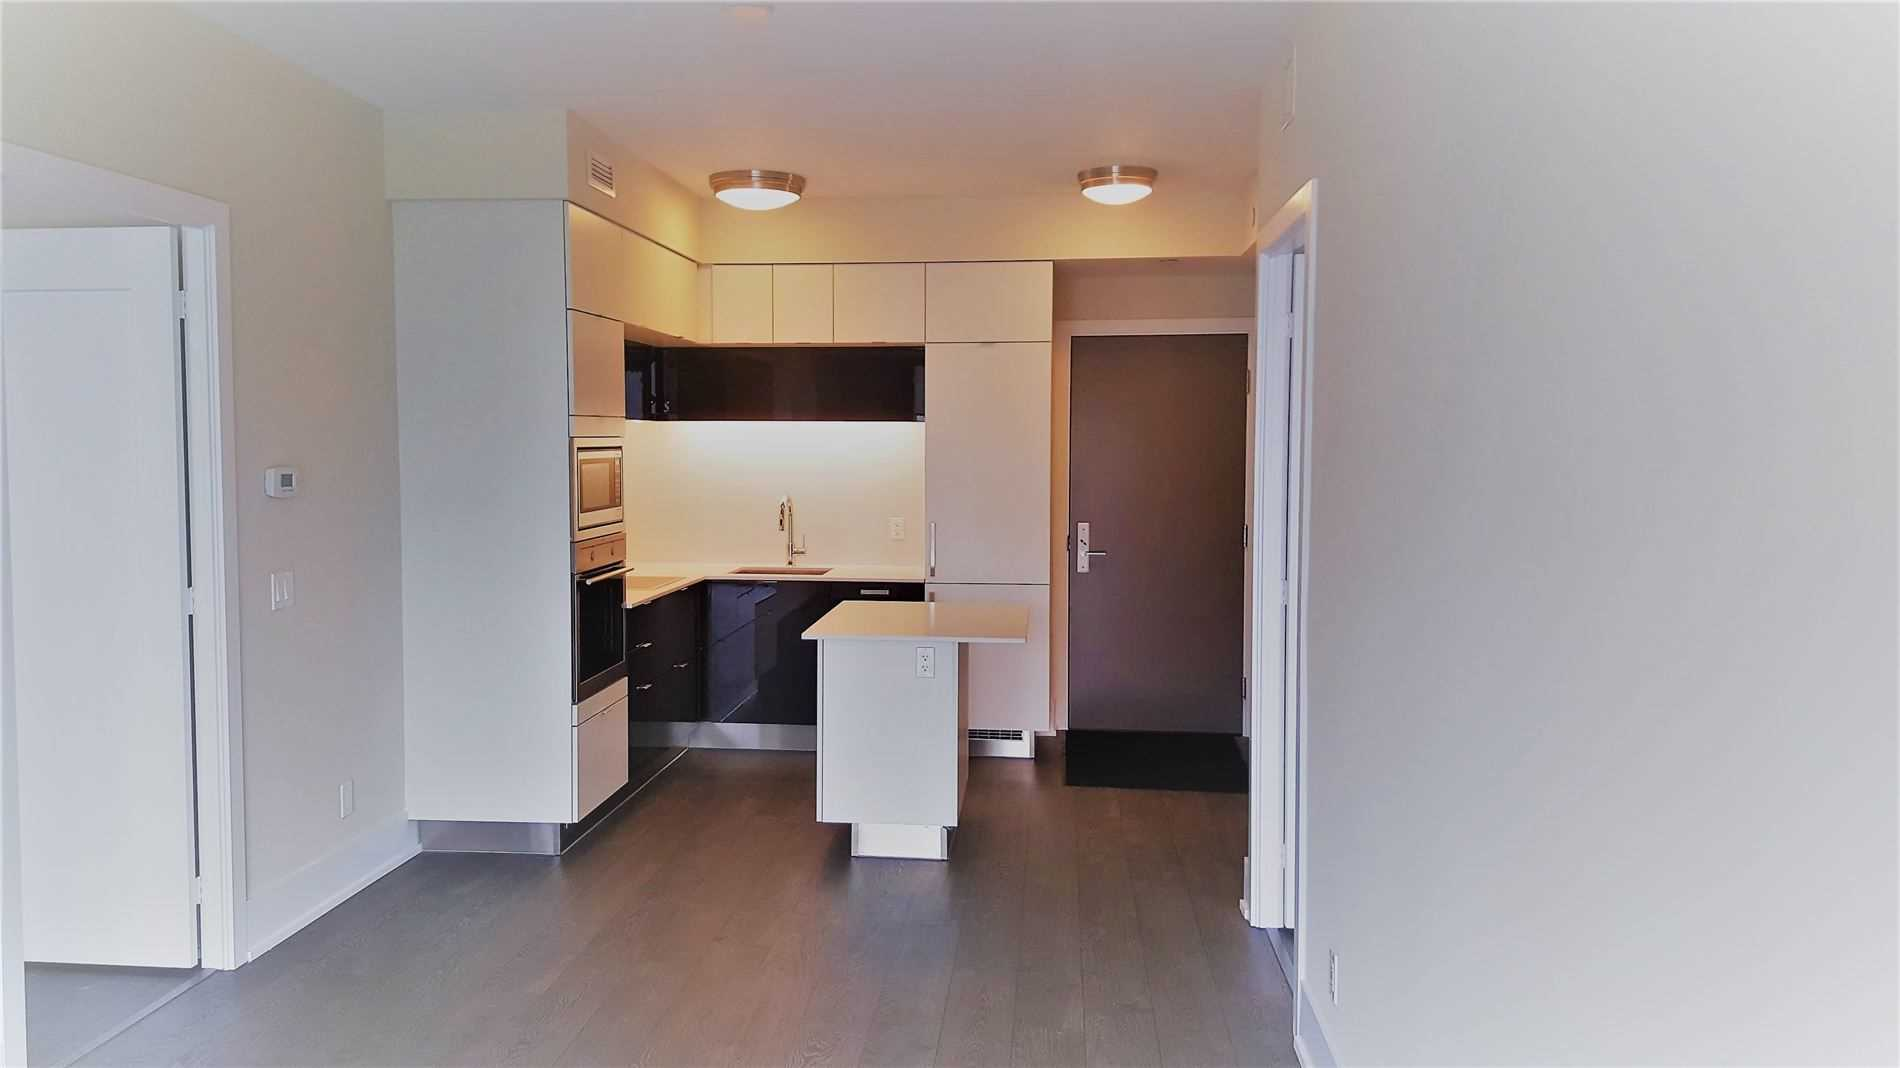 Co-op Apt For Lease In Toronto , 2 Bedrooms Bedrooms, ,2 BathroomsBathrooms,Co-op Apt,For Lease,840,Merchants' Wharf